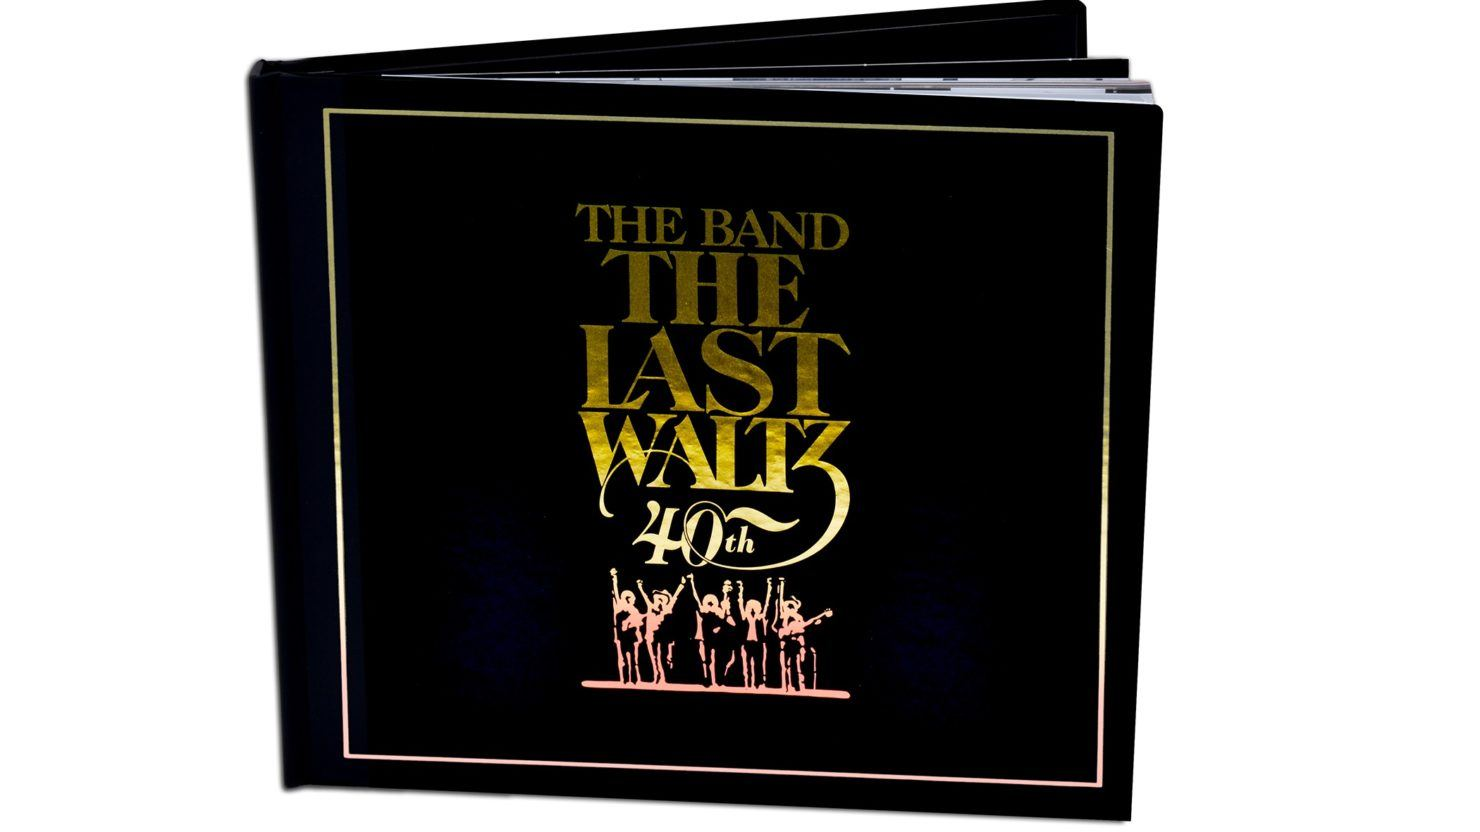 40th Anniversary Editions Of The Band The Last Waltz Due